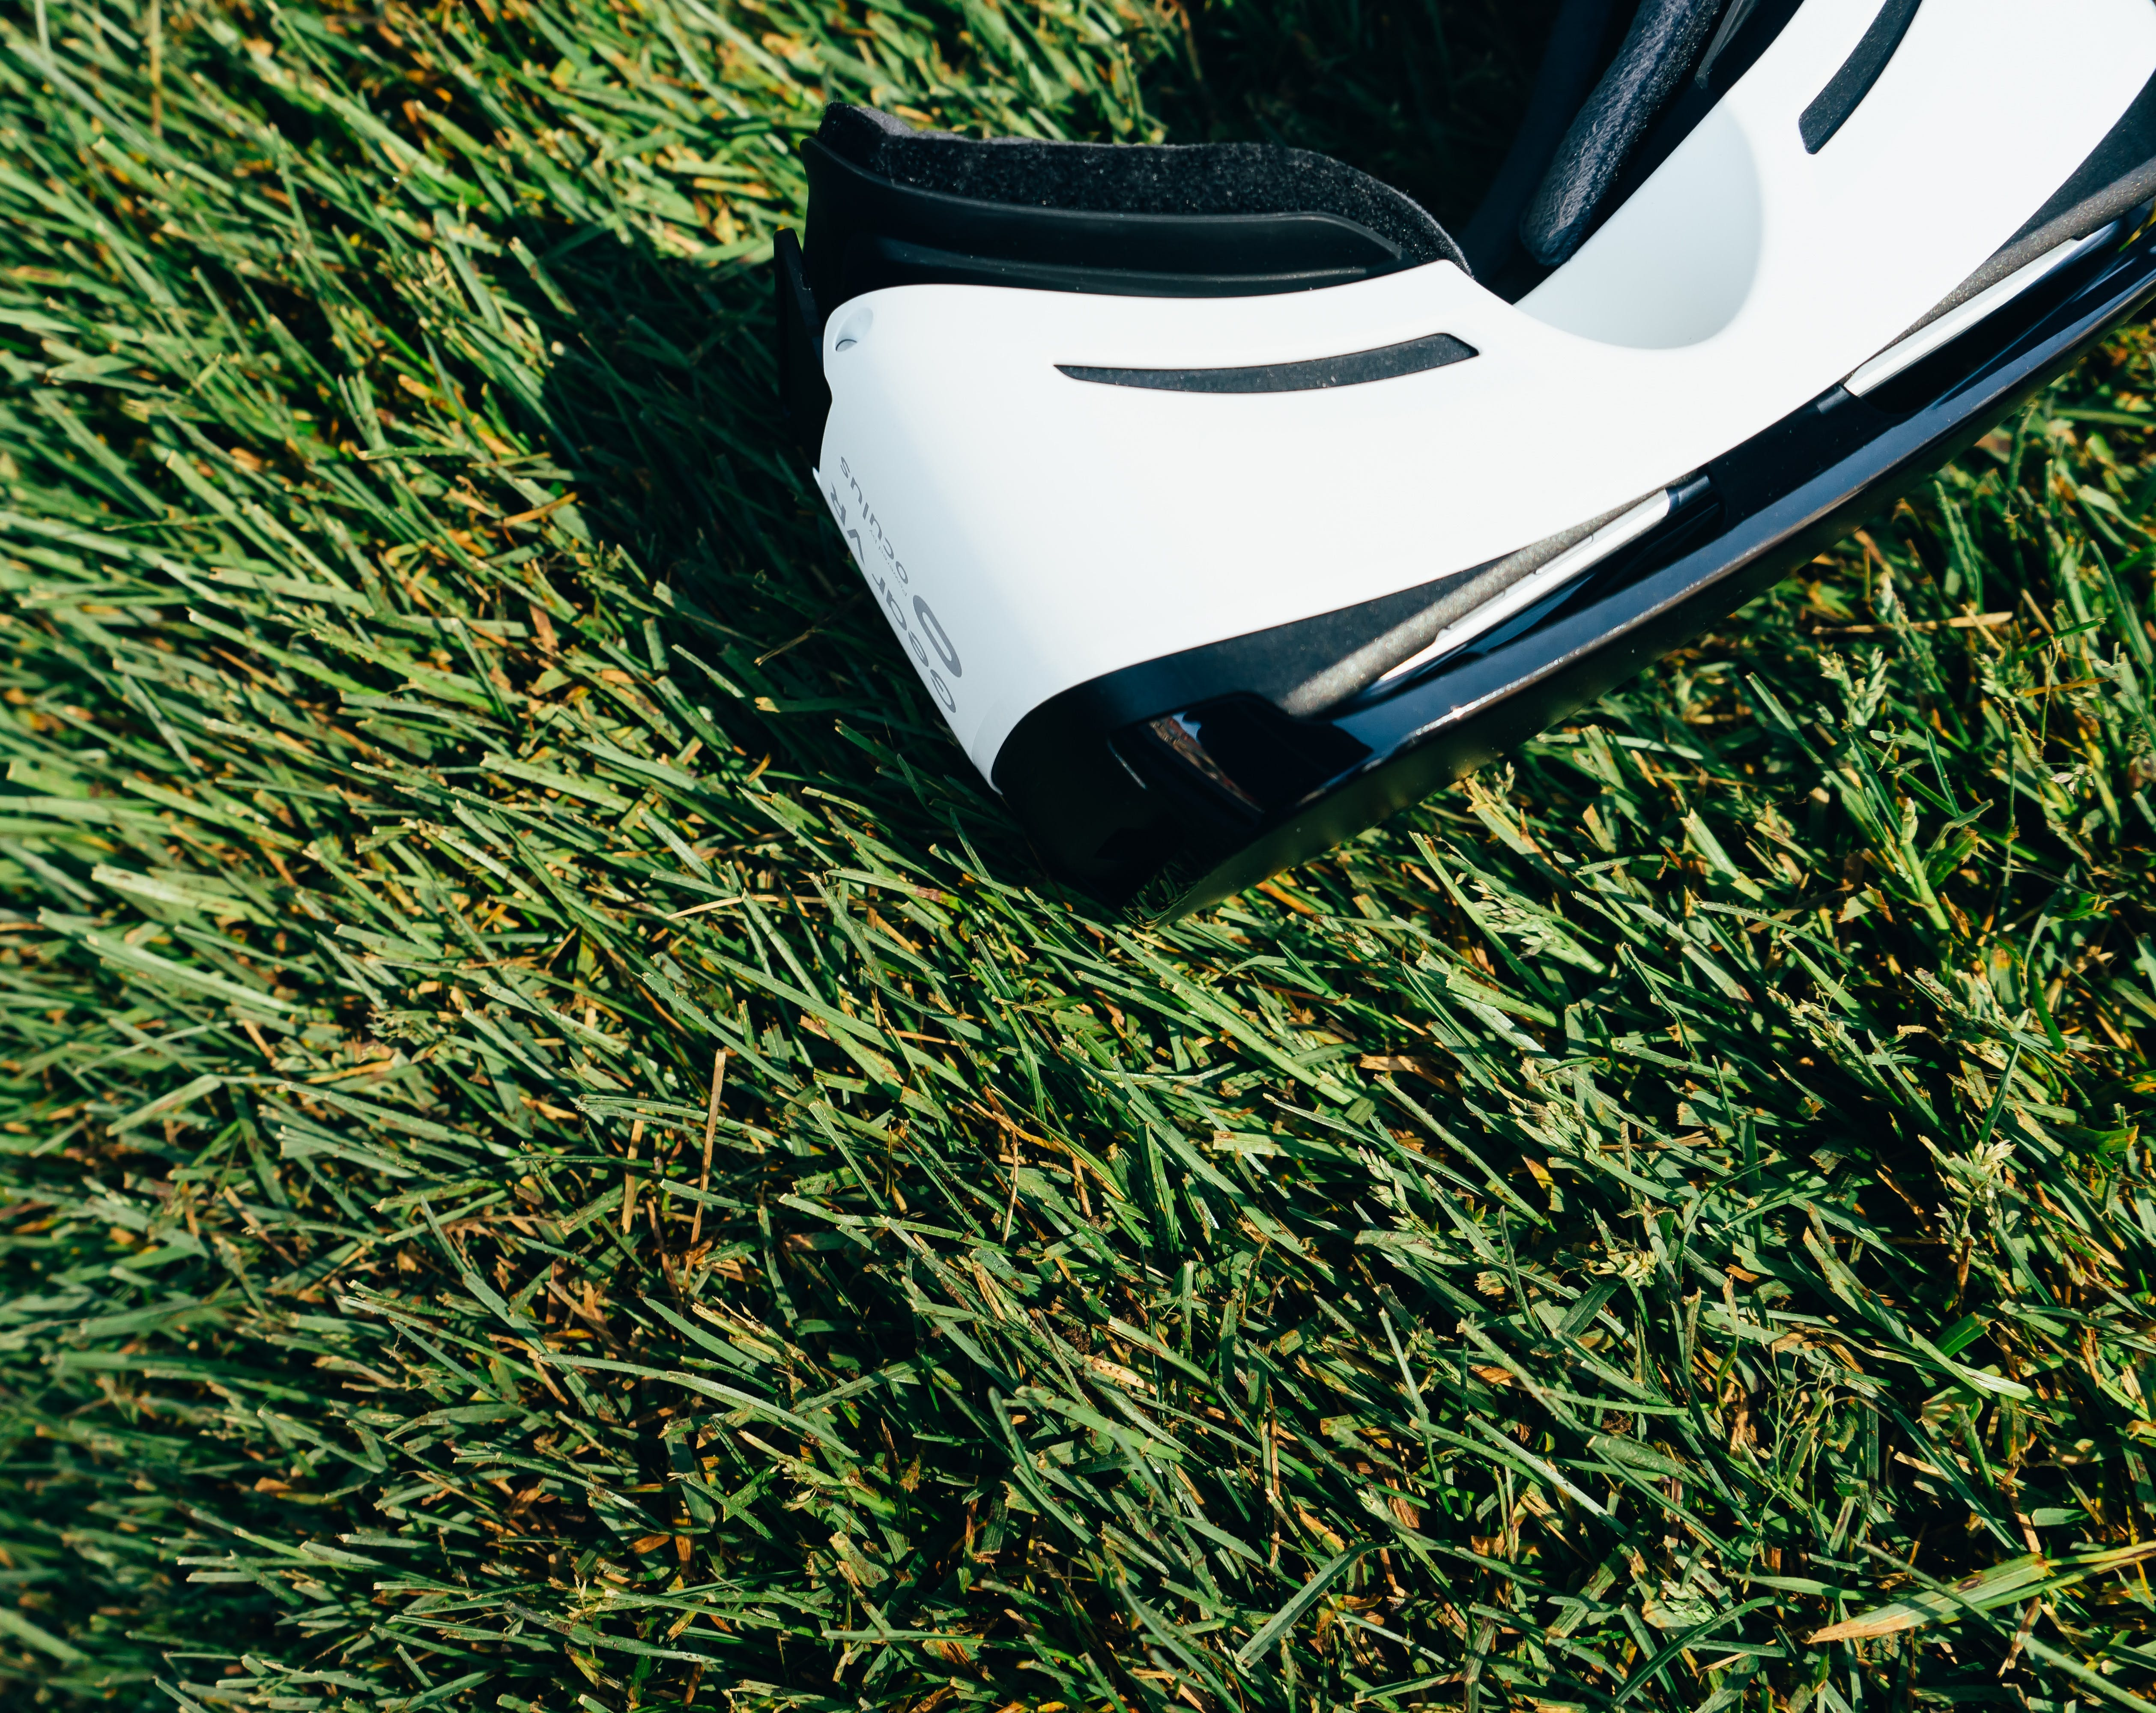 White and Black Vr Headset on Green Grass